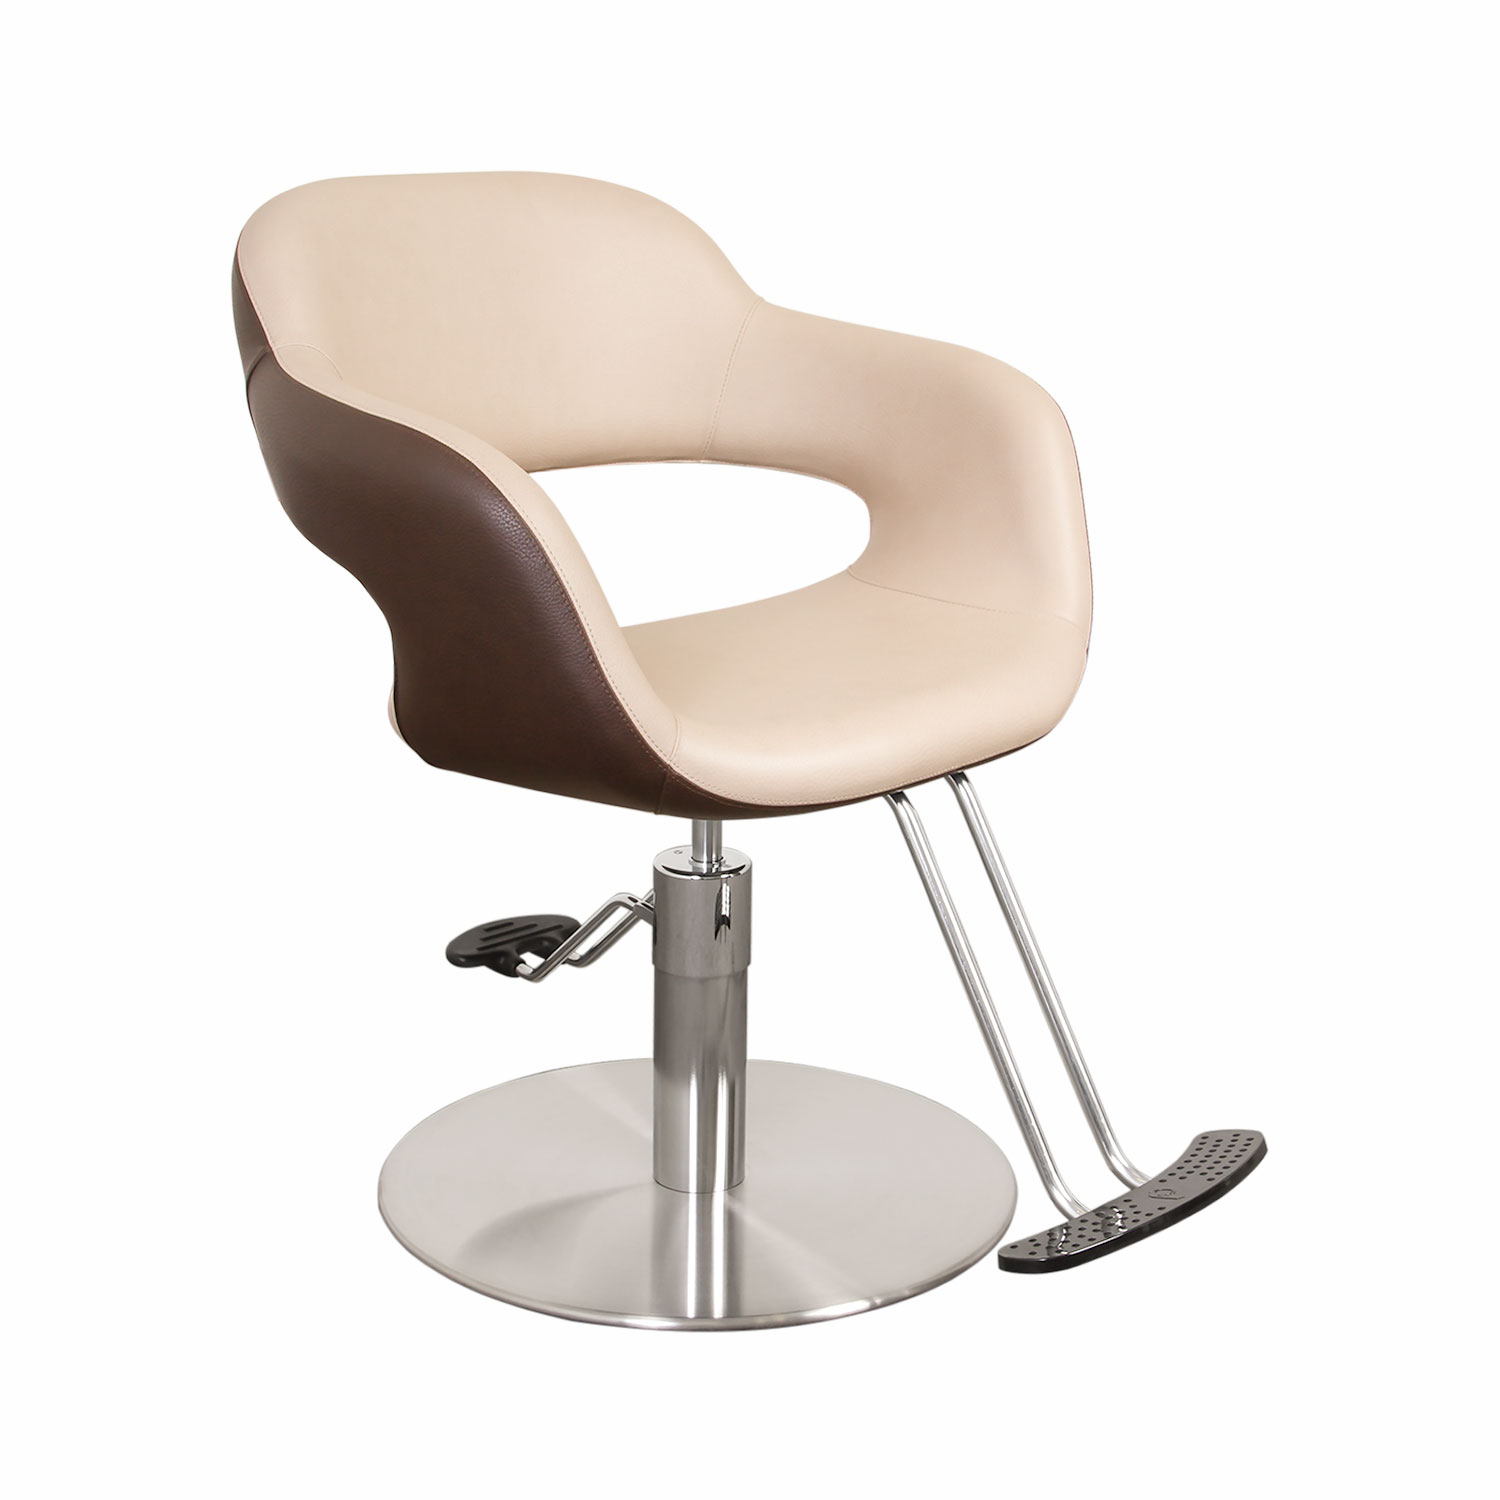 Vanessa Italian Hair Chair by Salon Ambience  main product image